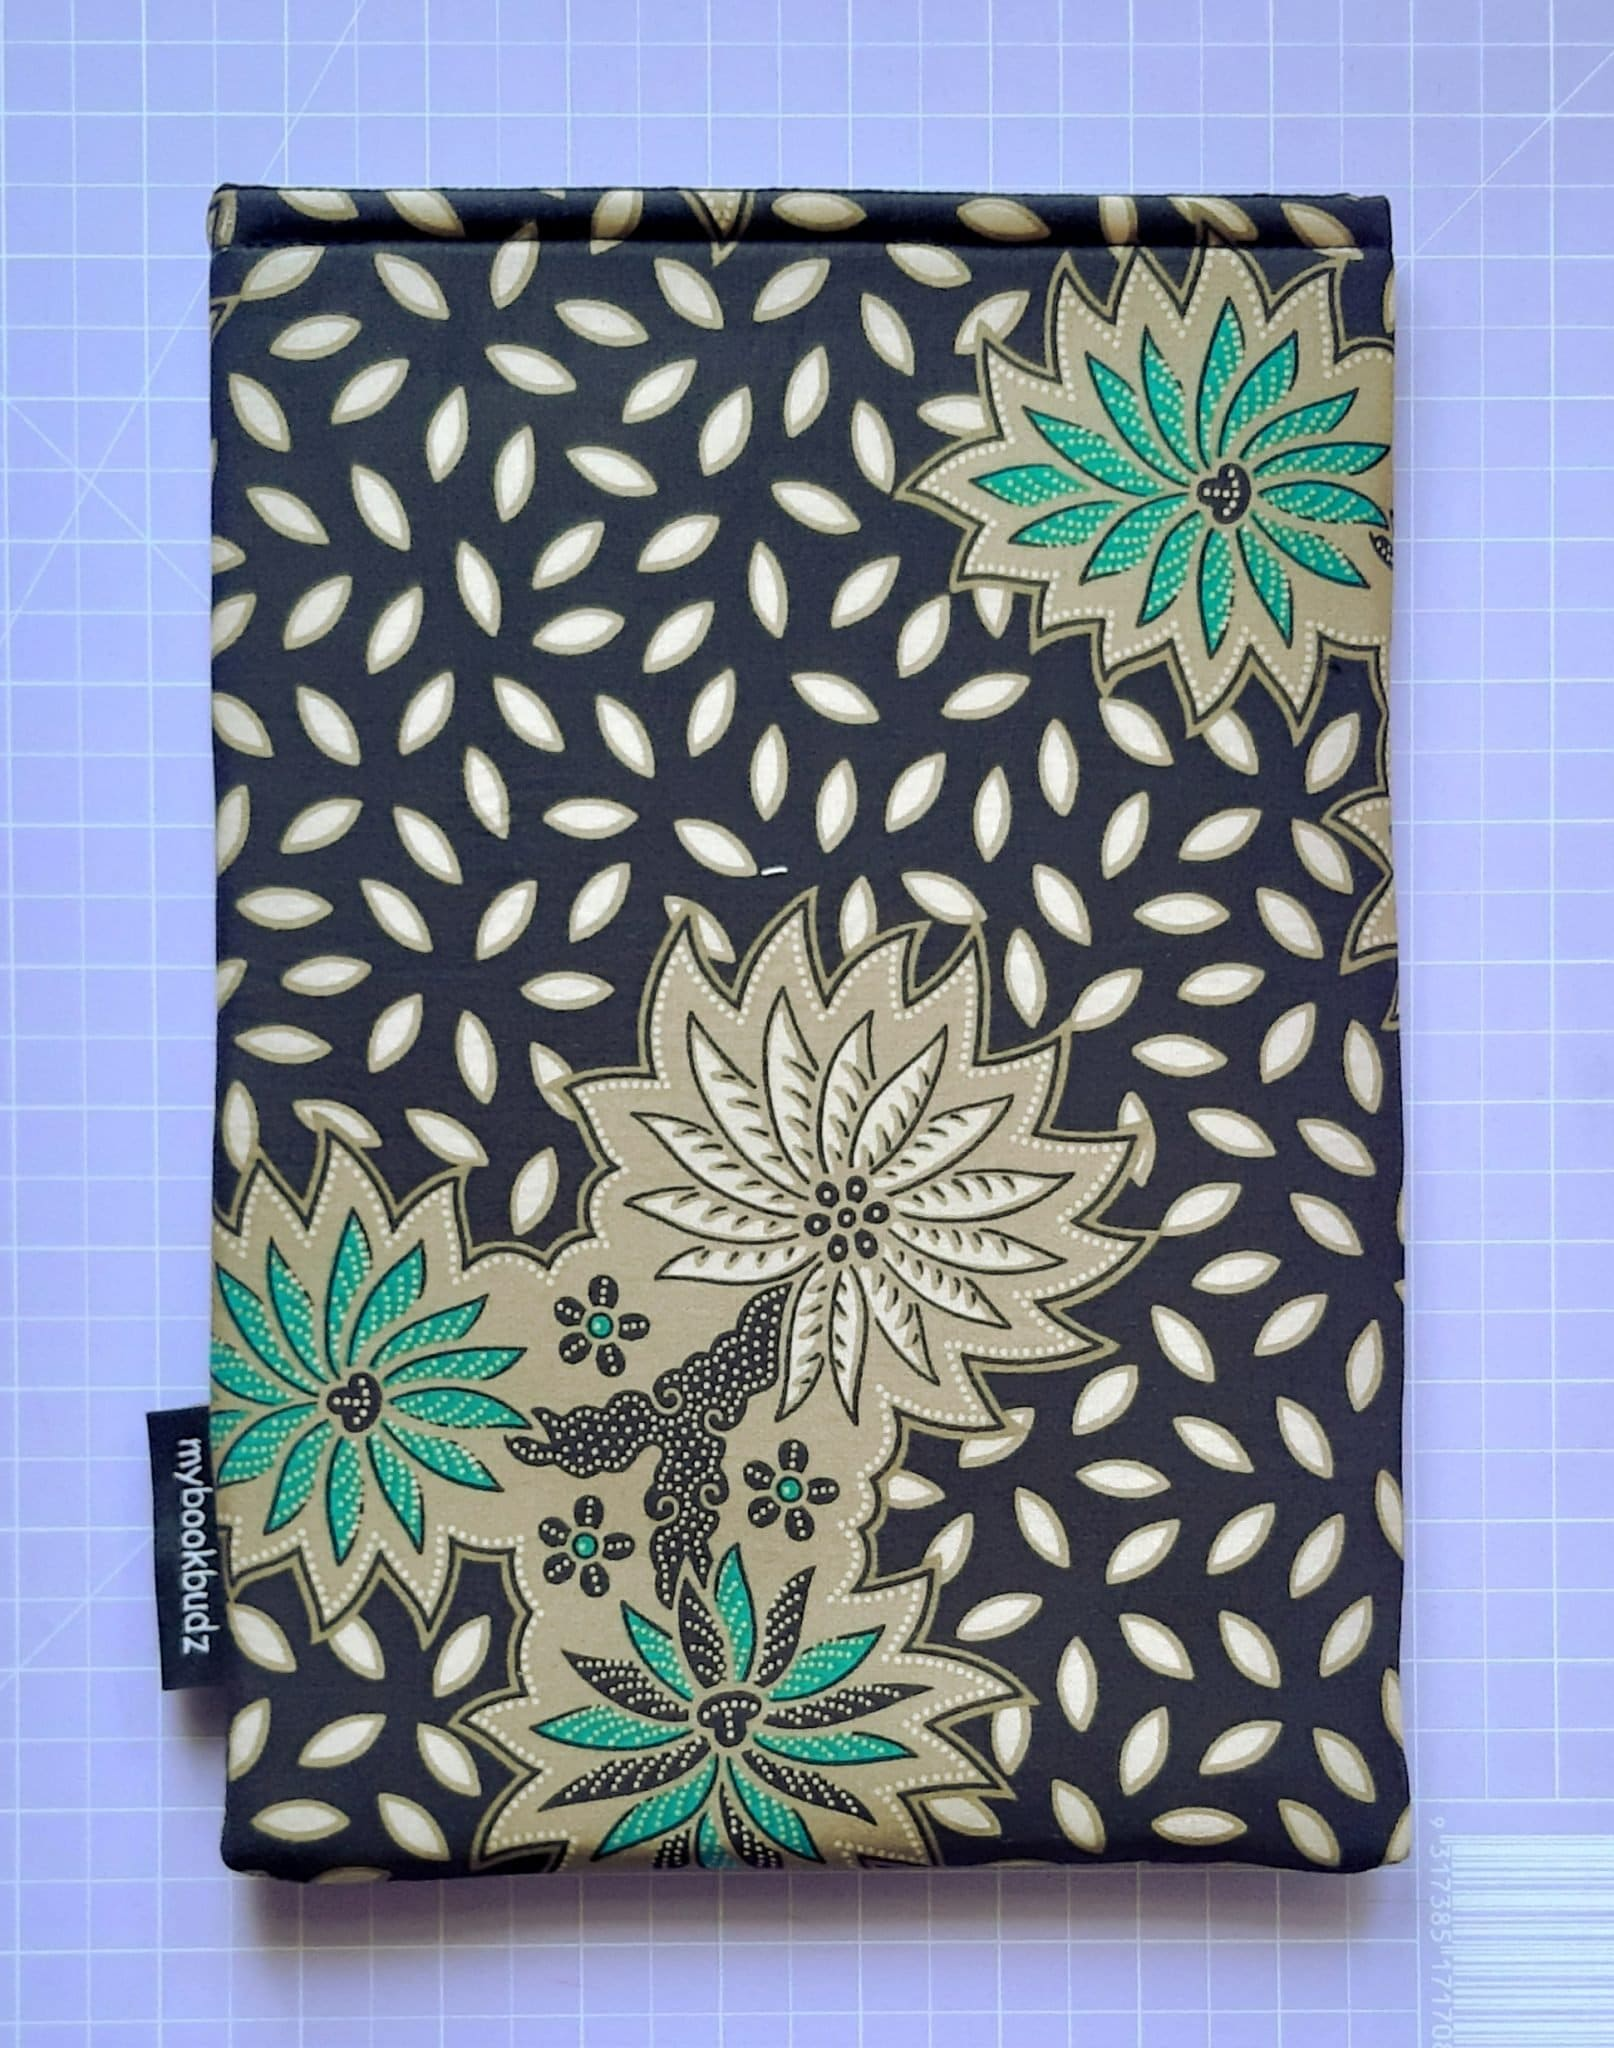 Black with Green Flower Batik Booksleeve